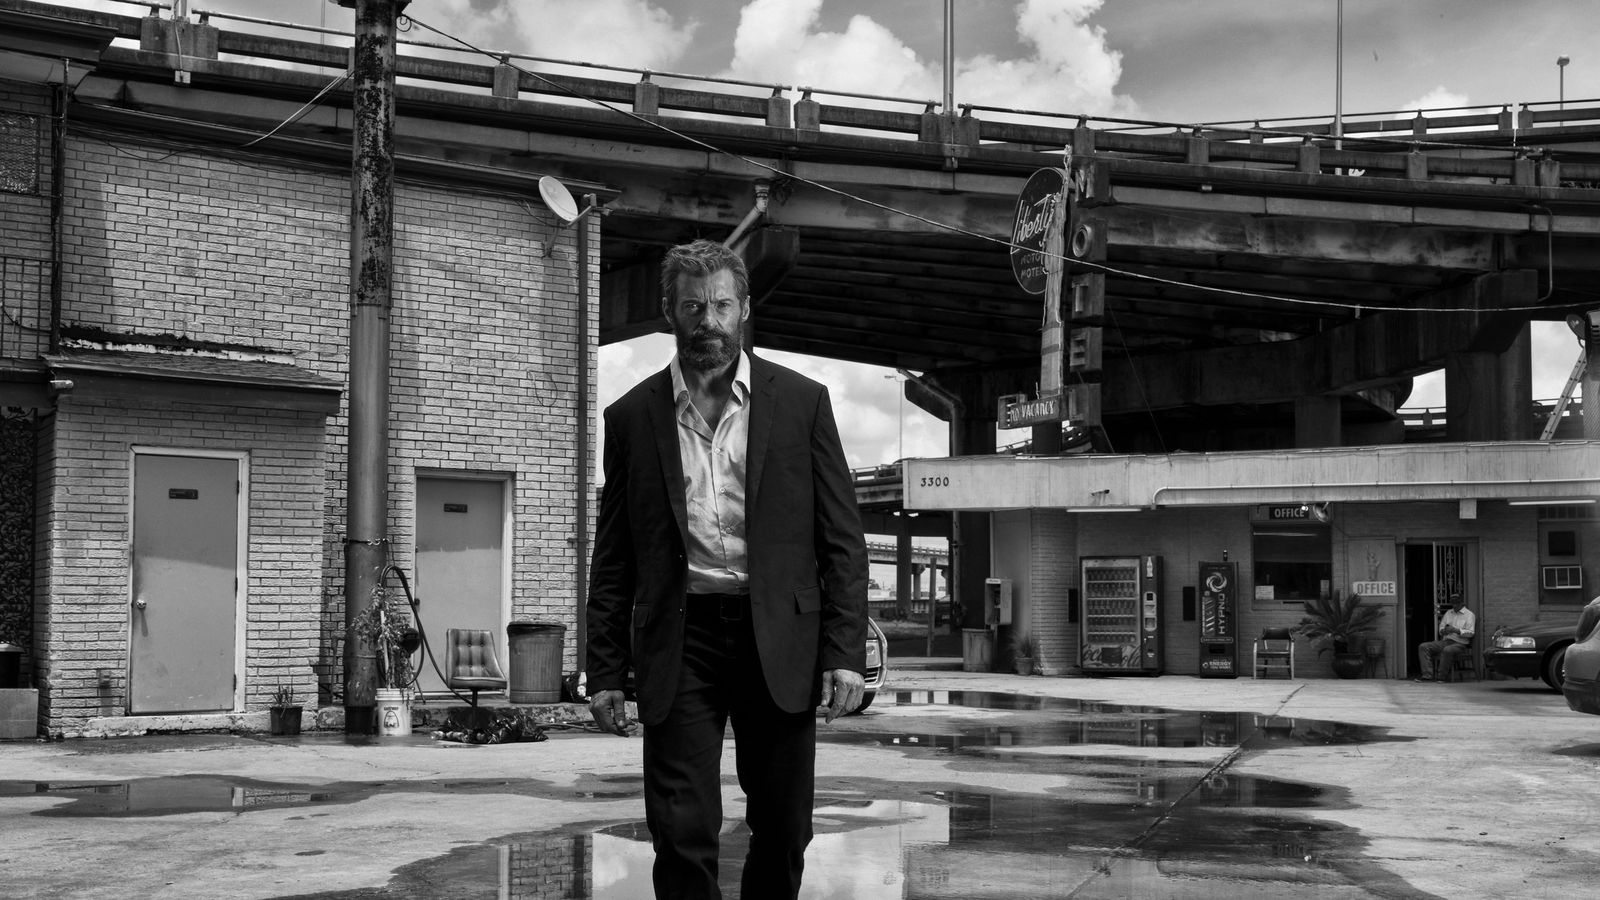 logan s black and white cut is coming to theaters on may 16th the